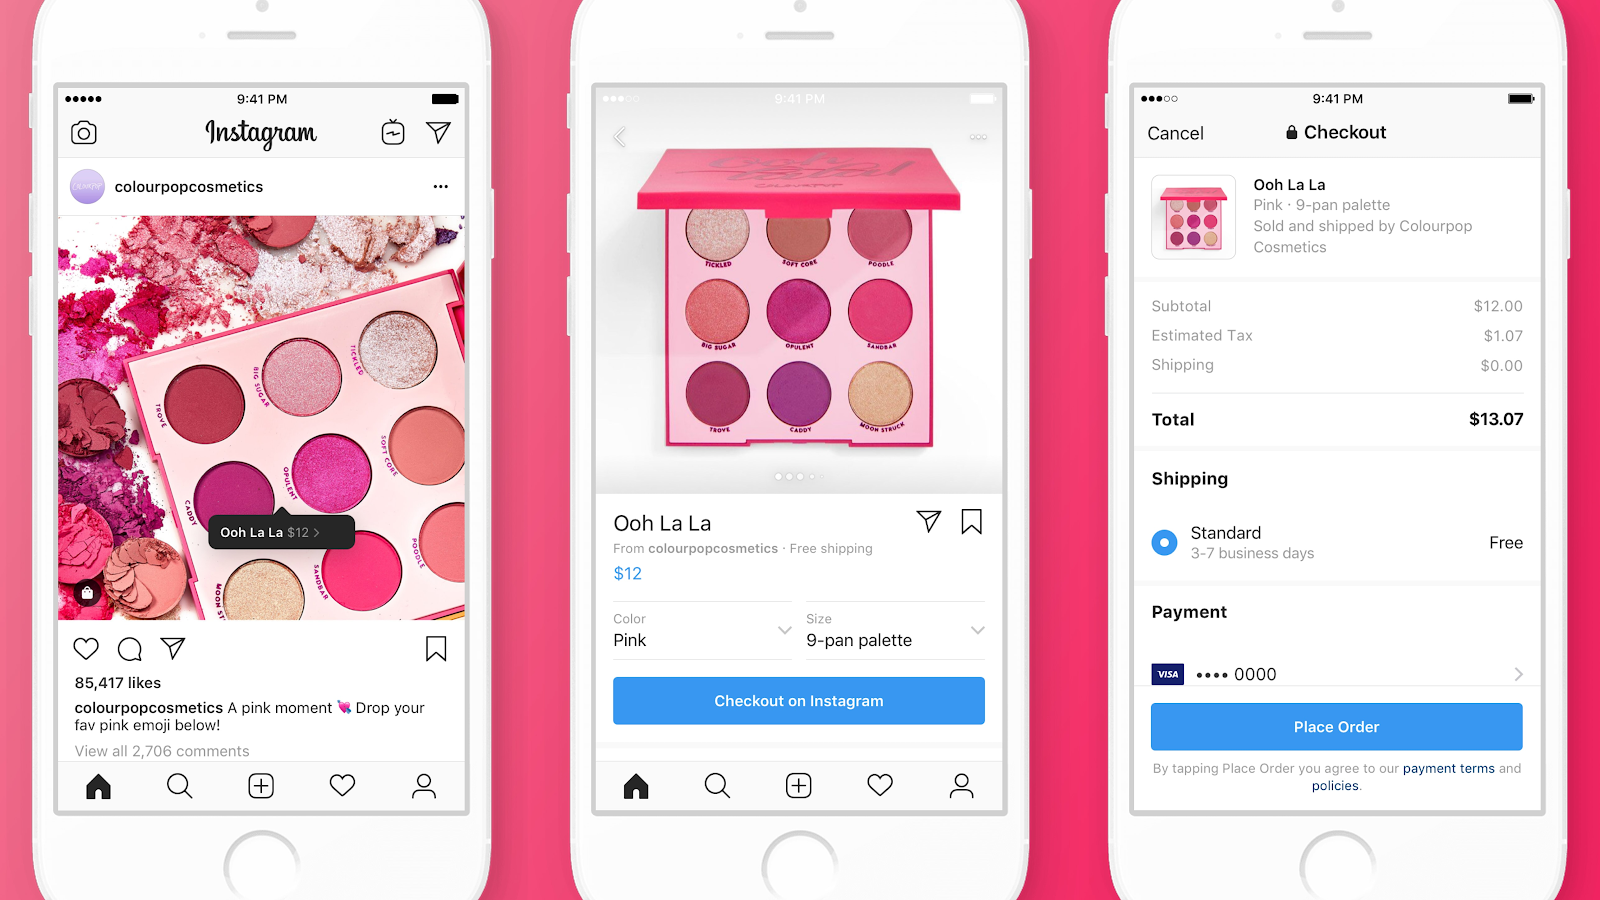 3 screenshots of colorpopcosmetics Instagram post from product to Instagram shopping and checkout.